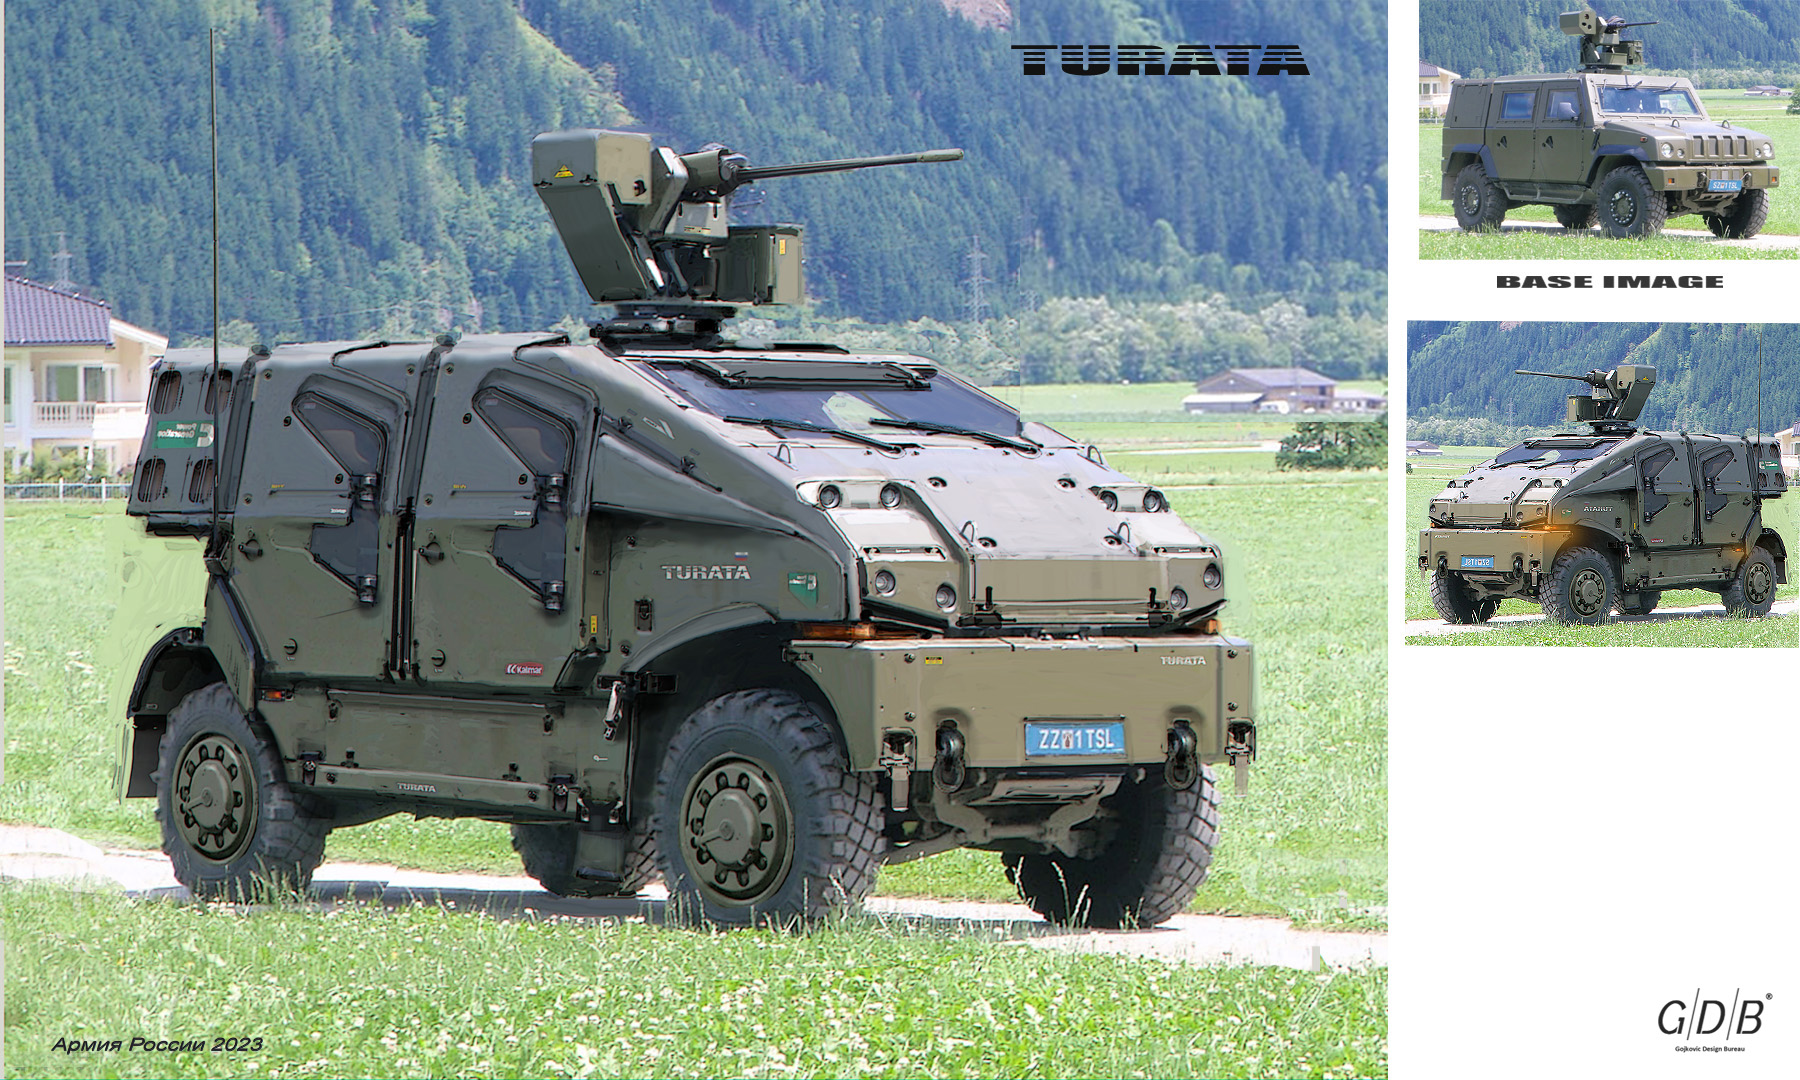 Russian military vehicles of the year 2023